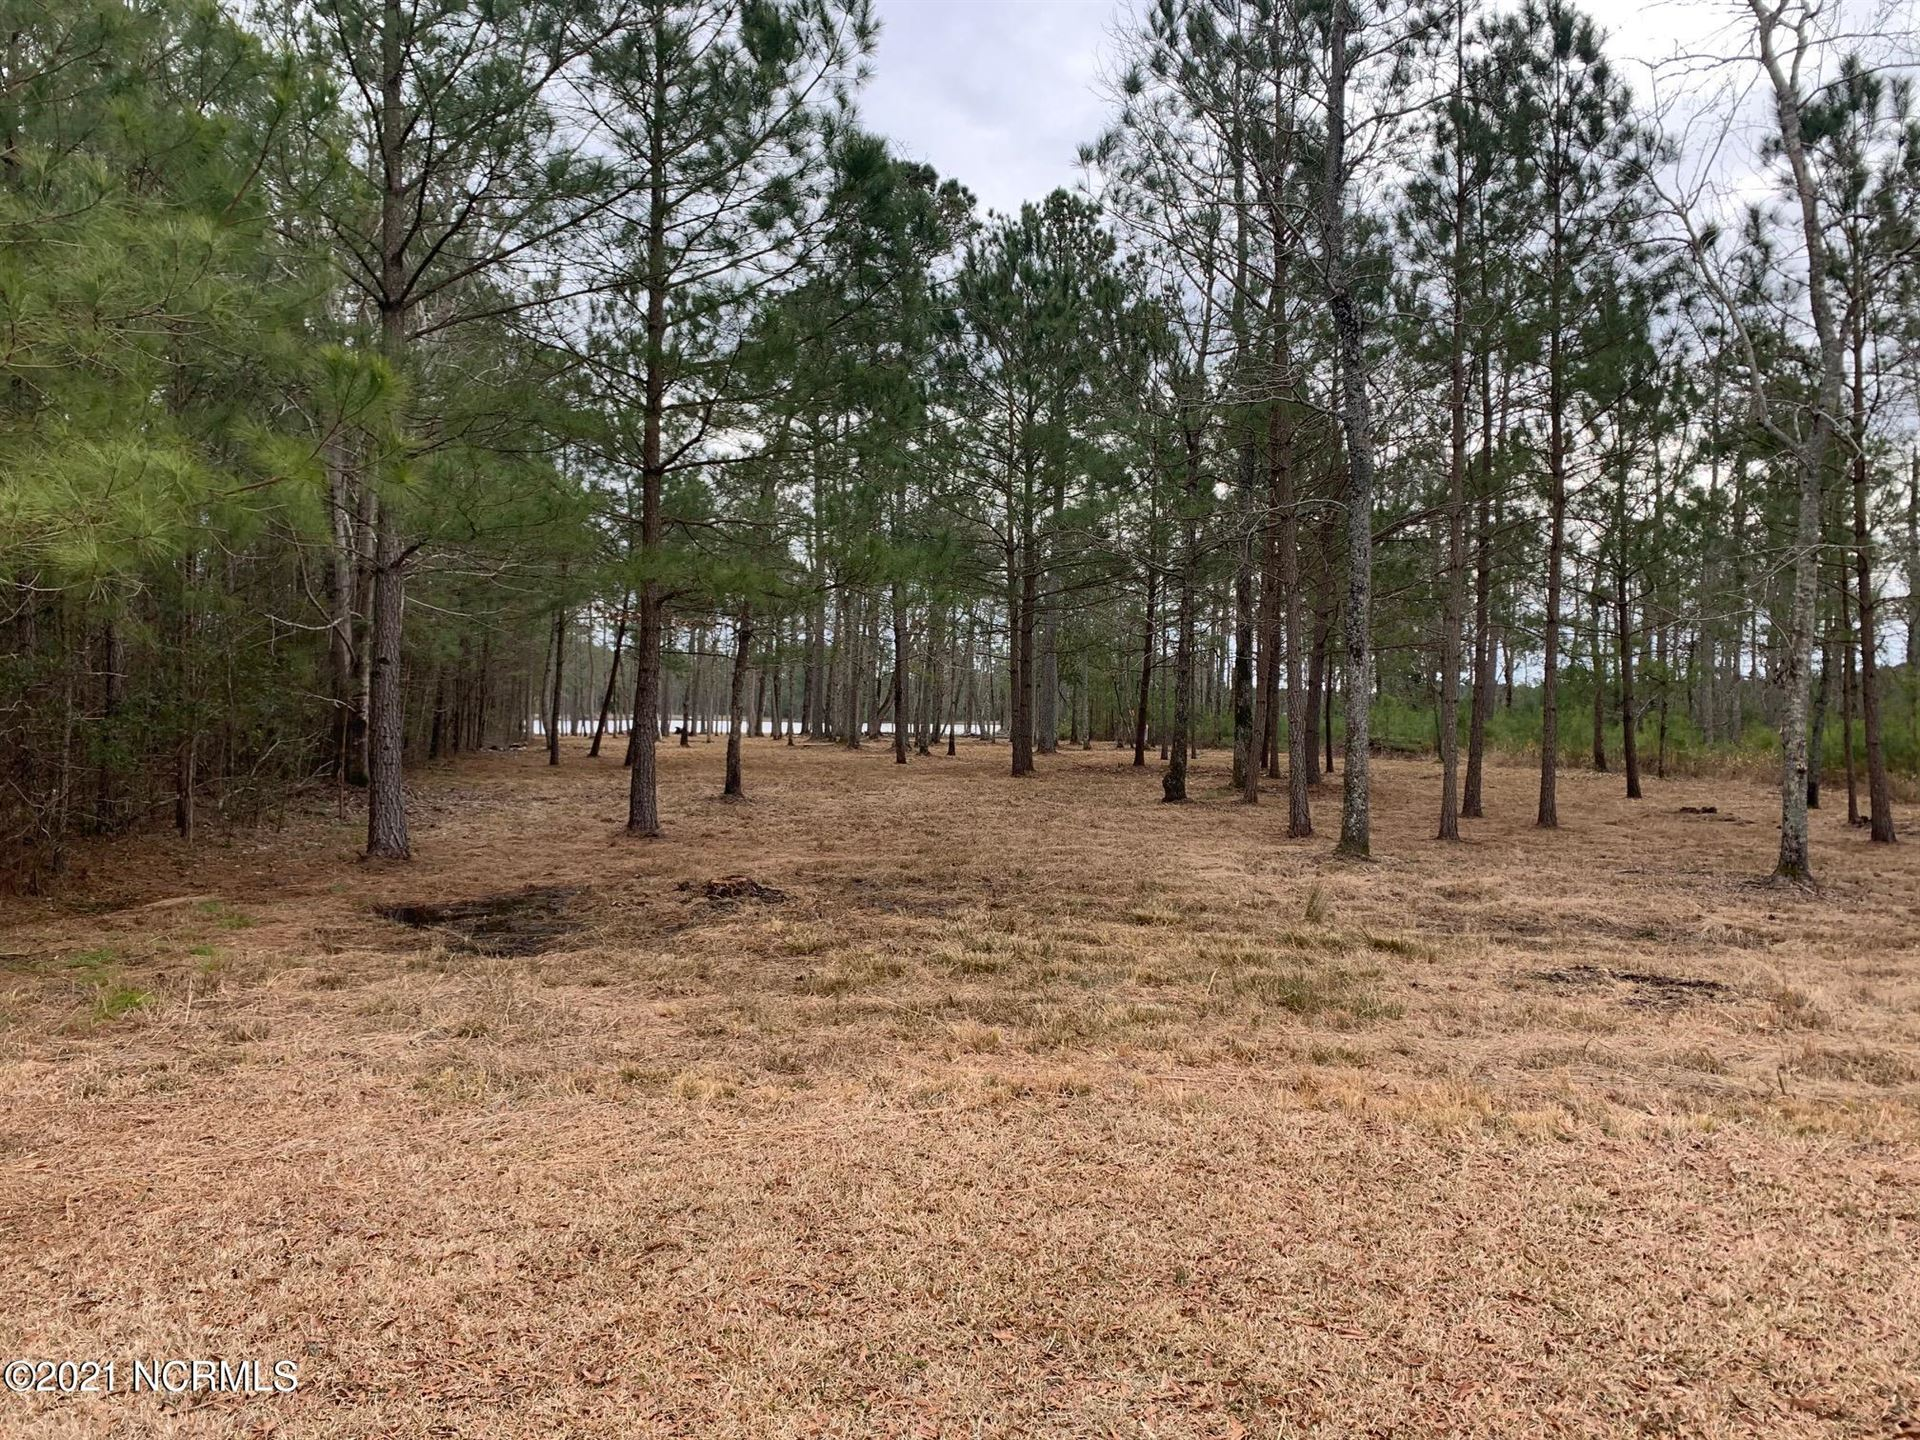 Photo of Lot 37 Sunset Point Road, Belhaven, NC 27810 (MLS # 100258743)